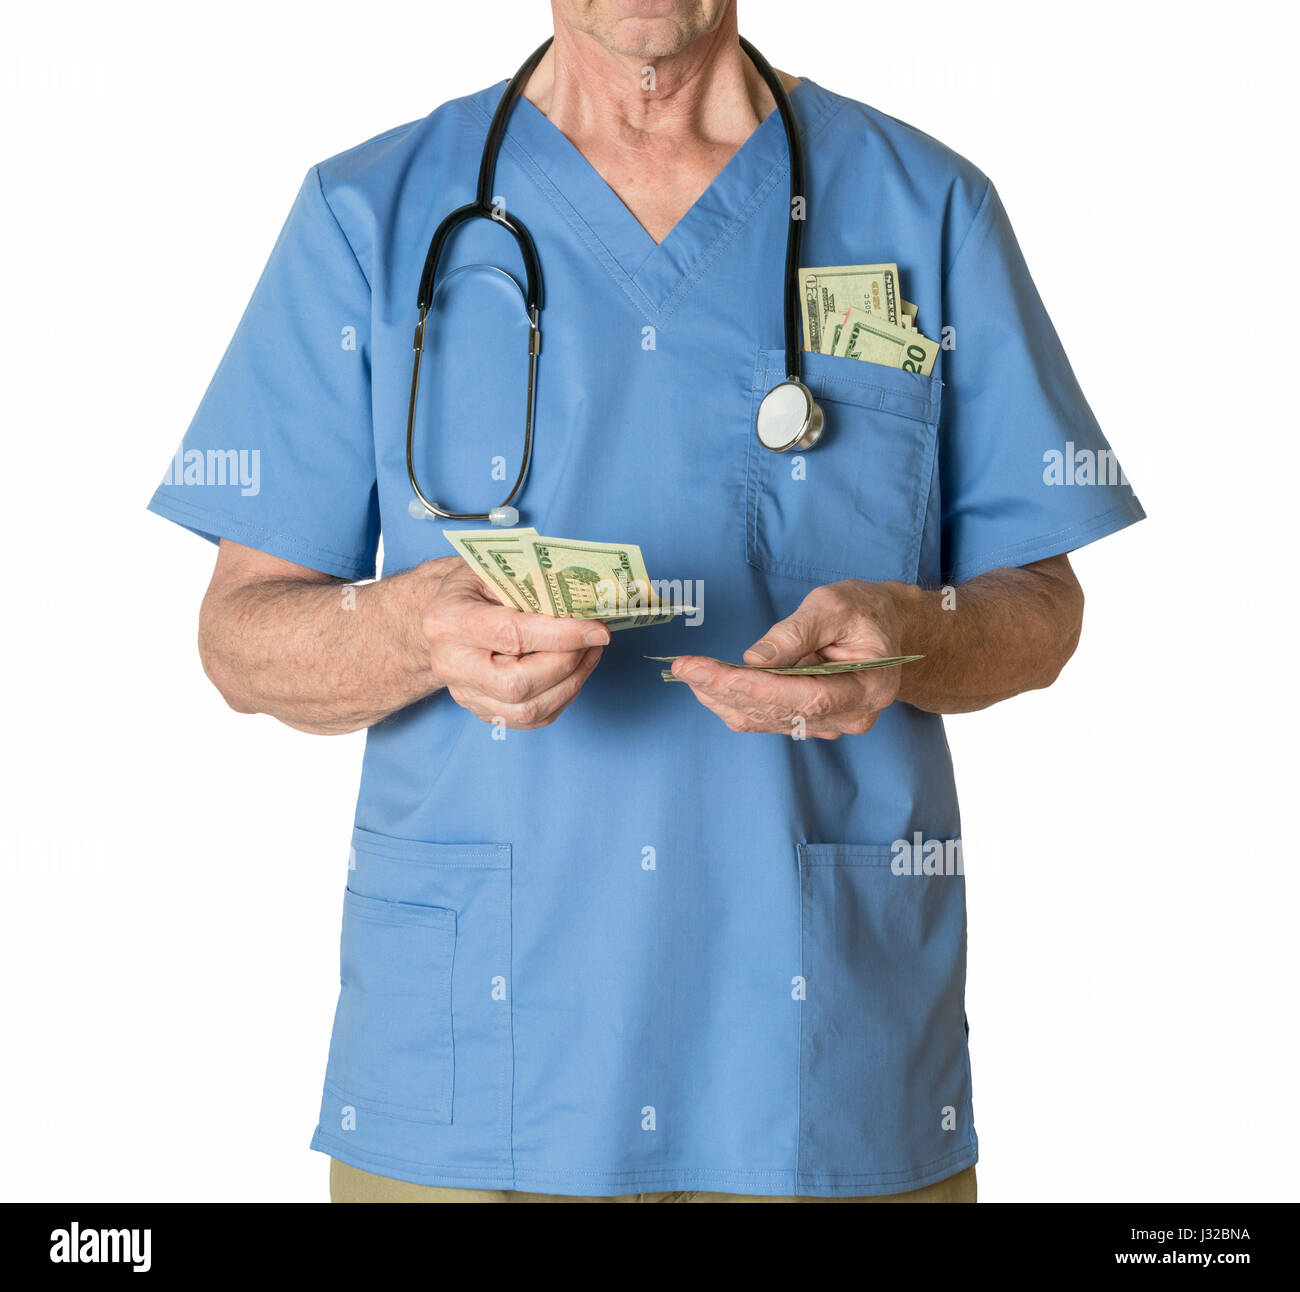 Doctor in scrubs counting money payment - healthcare, medical insurance, medicare, bills concept - Stock Image